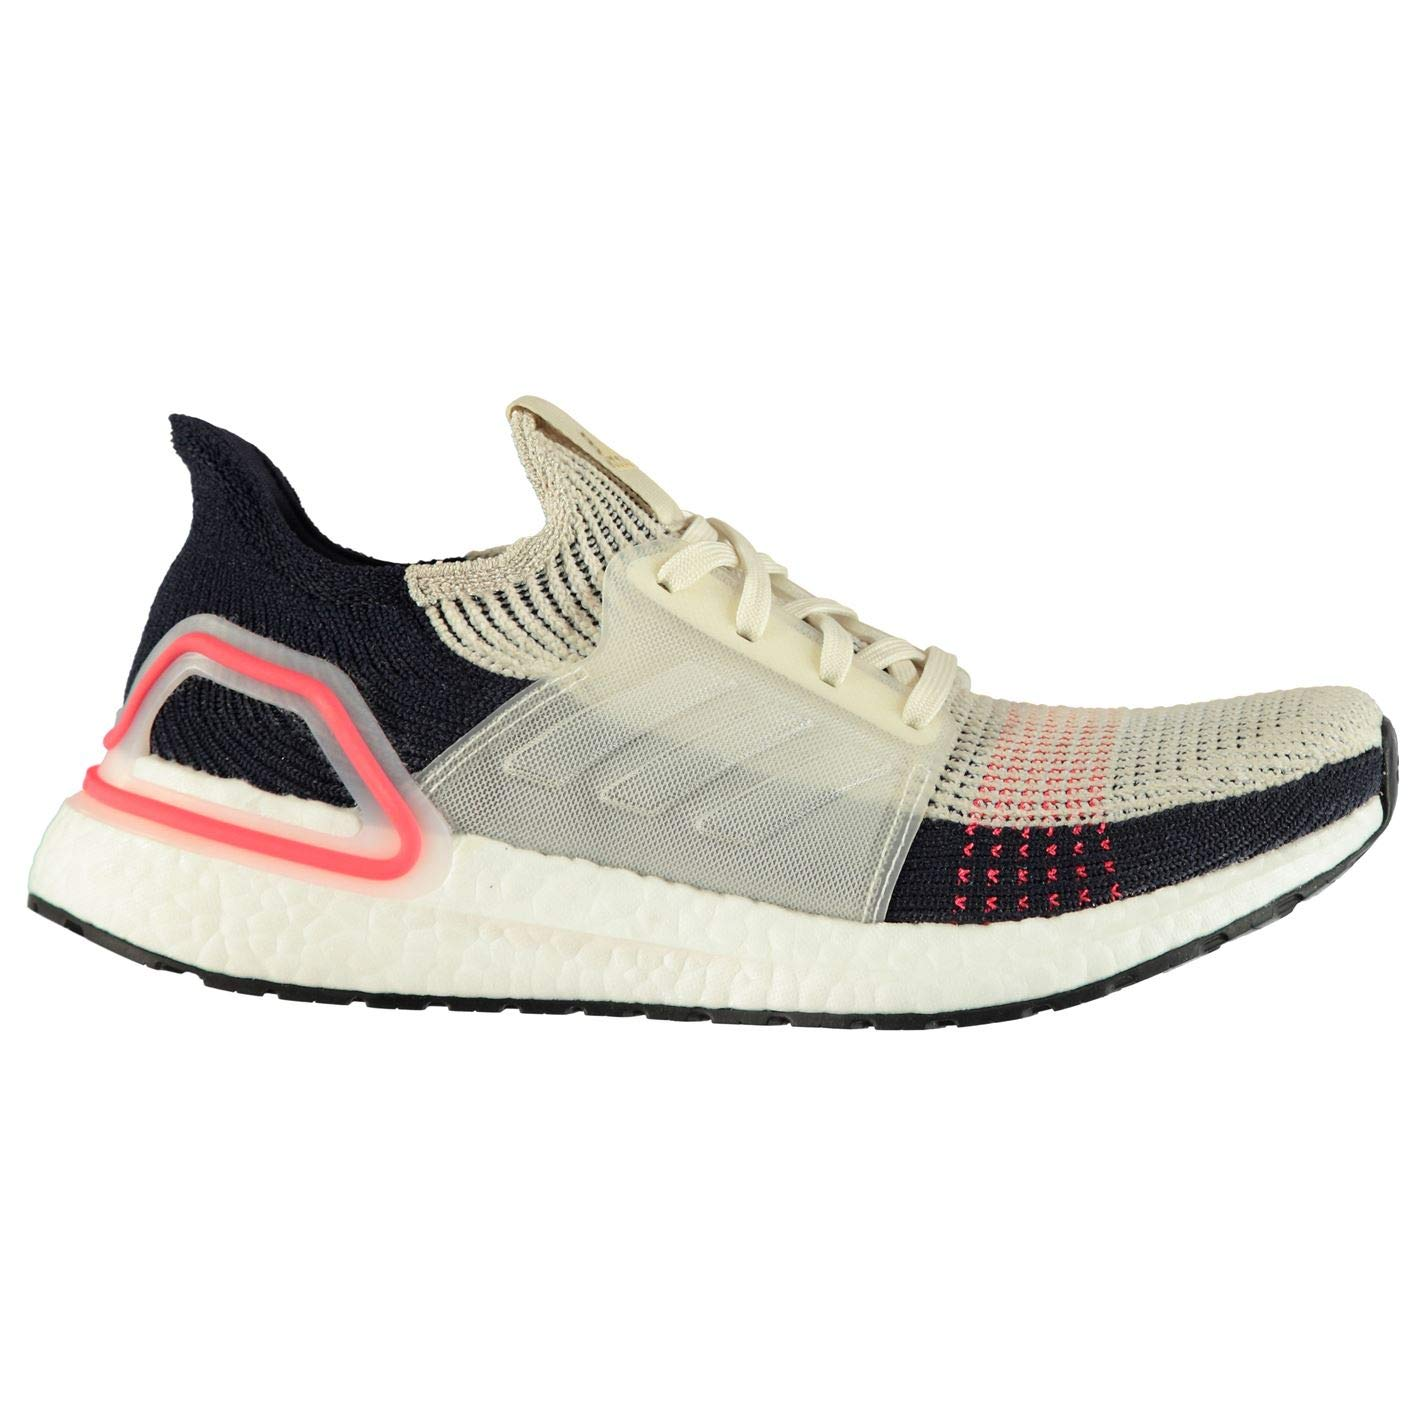 sale retailer 25bd7 b66fb adidas Ultra Boost 19 Running Shoes - SS19